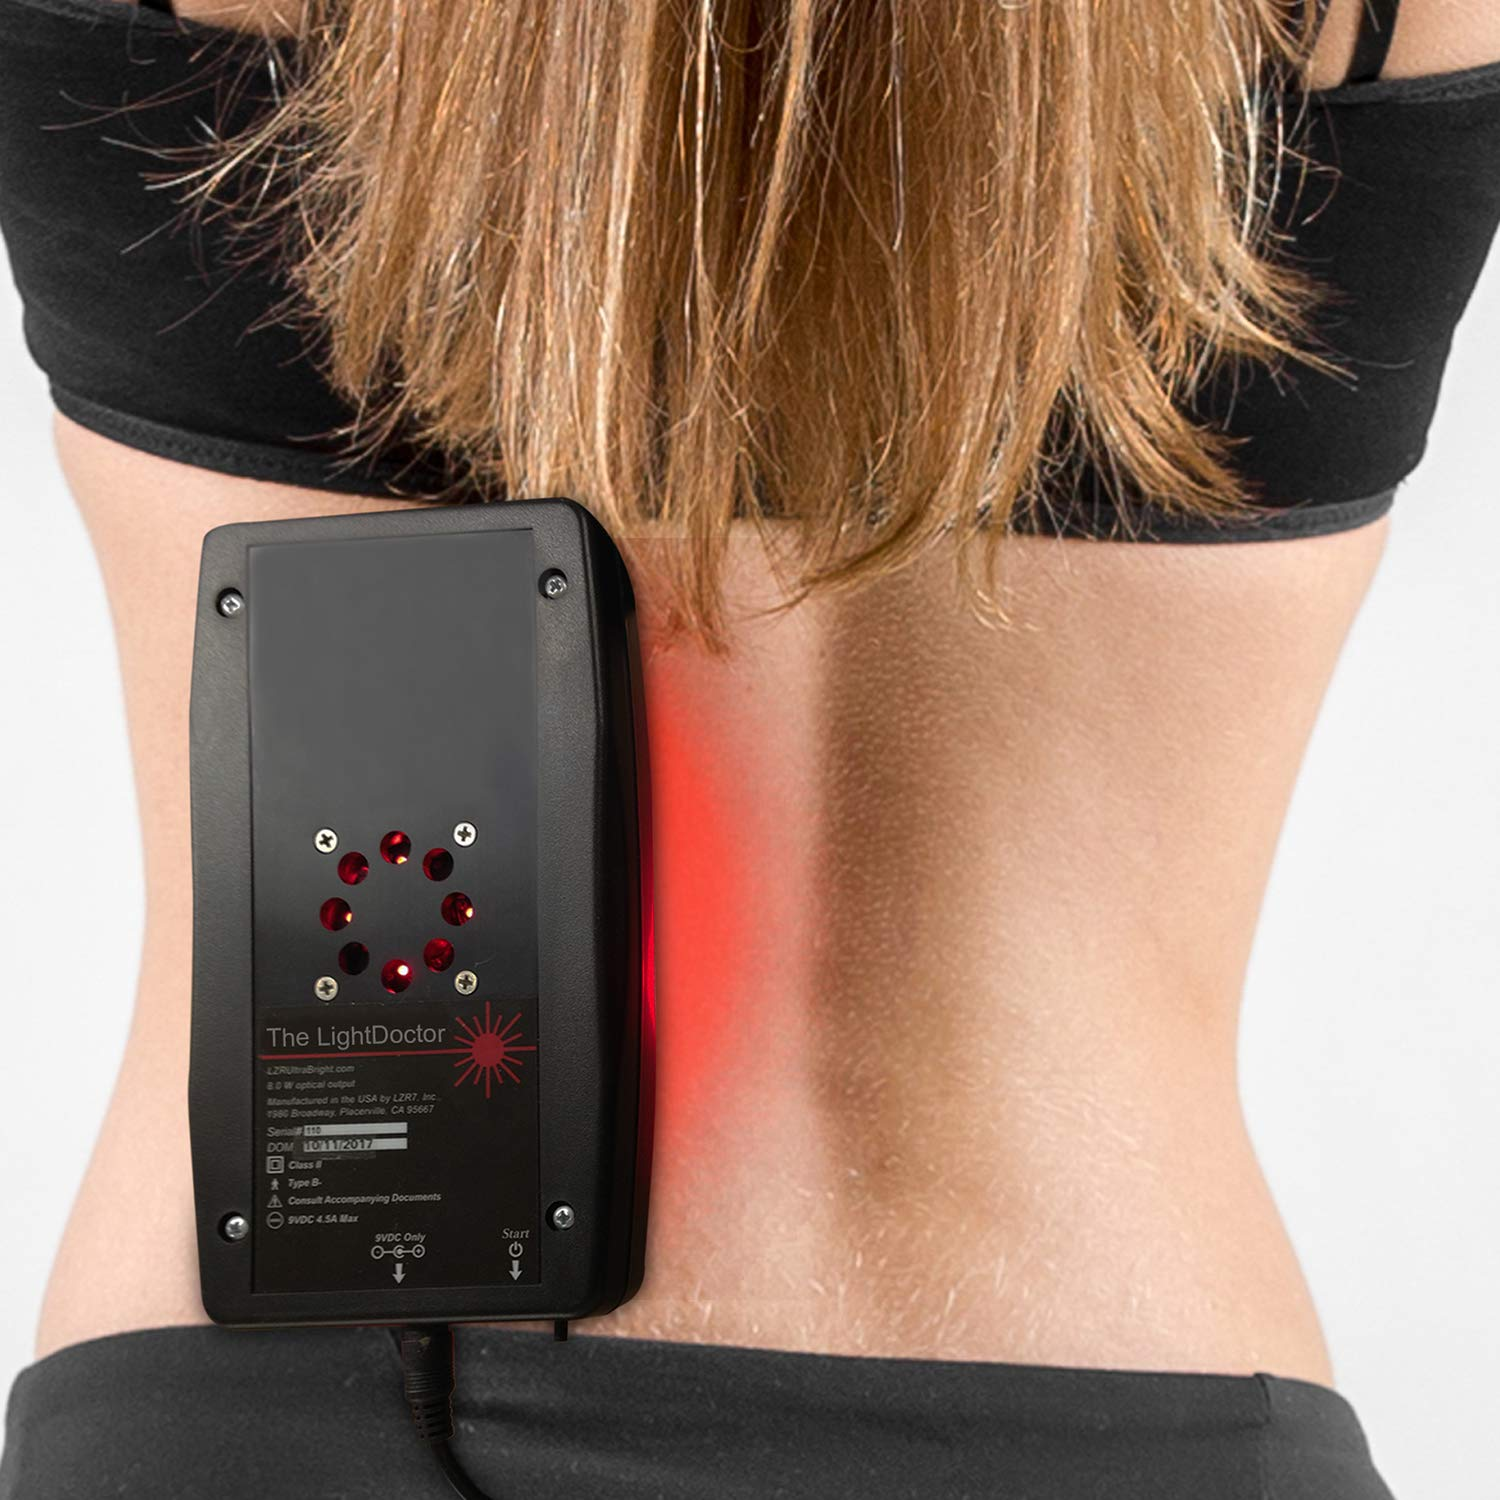 The LightDoctor Near Infrared Red and LED Light Therapy Relief for Neck Pain, Back Pain and Arthritis with Safety Timer & Custom Carrying Case, FDA Cleared by Light Doctor (Image #5)